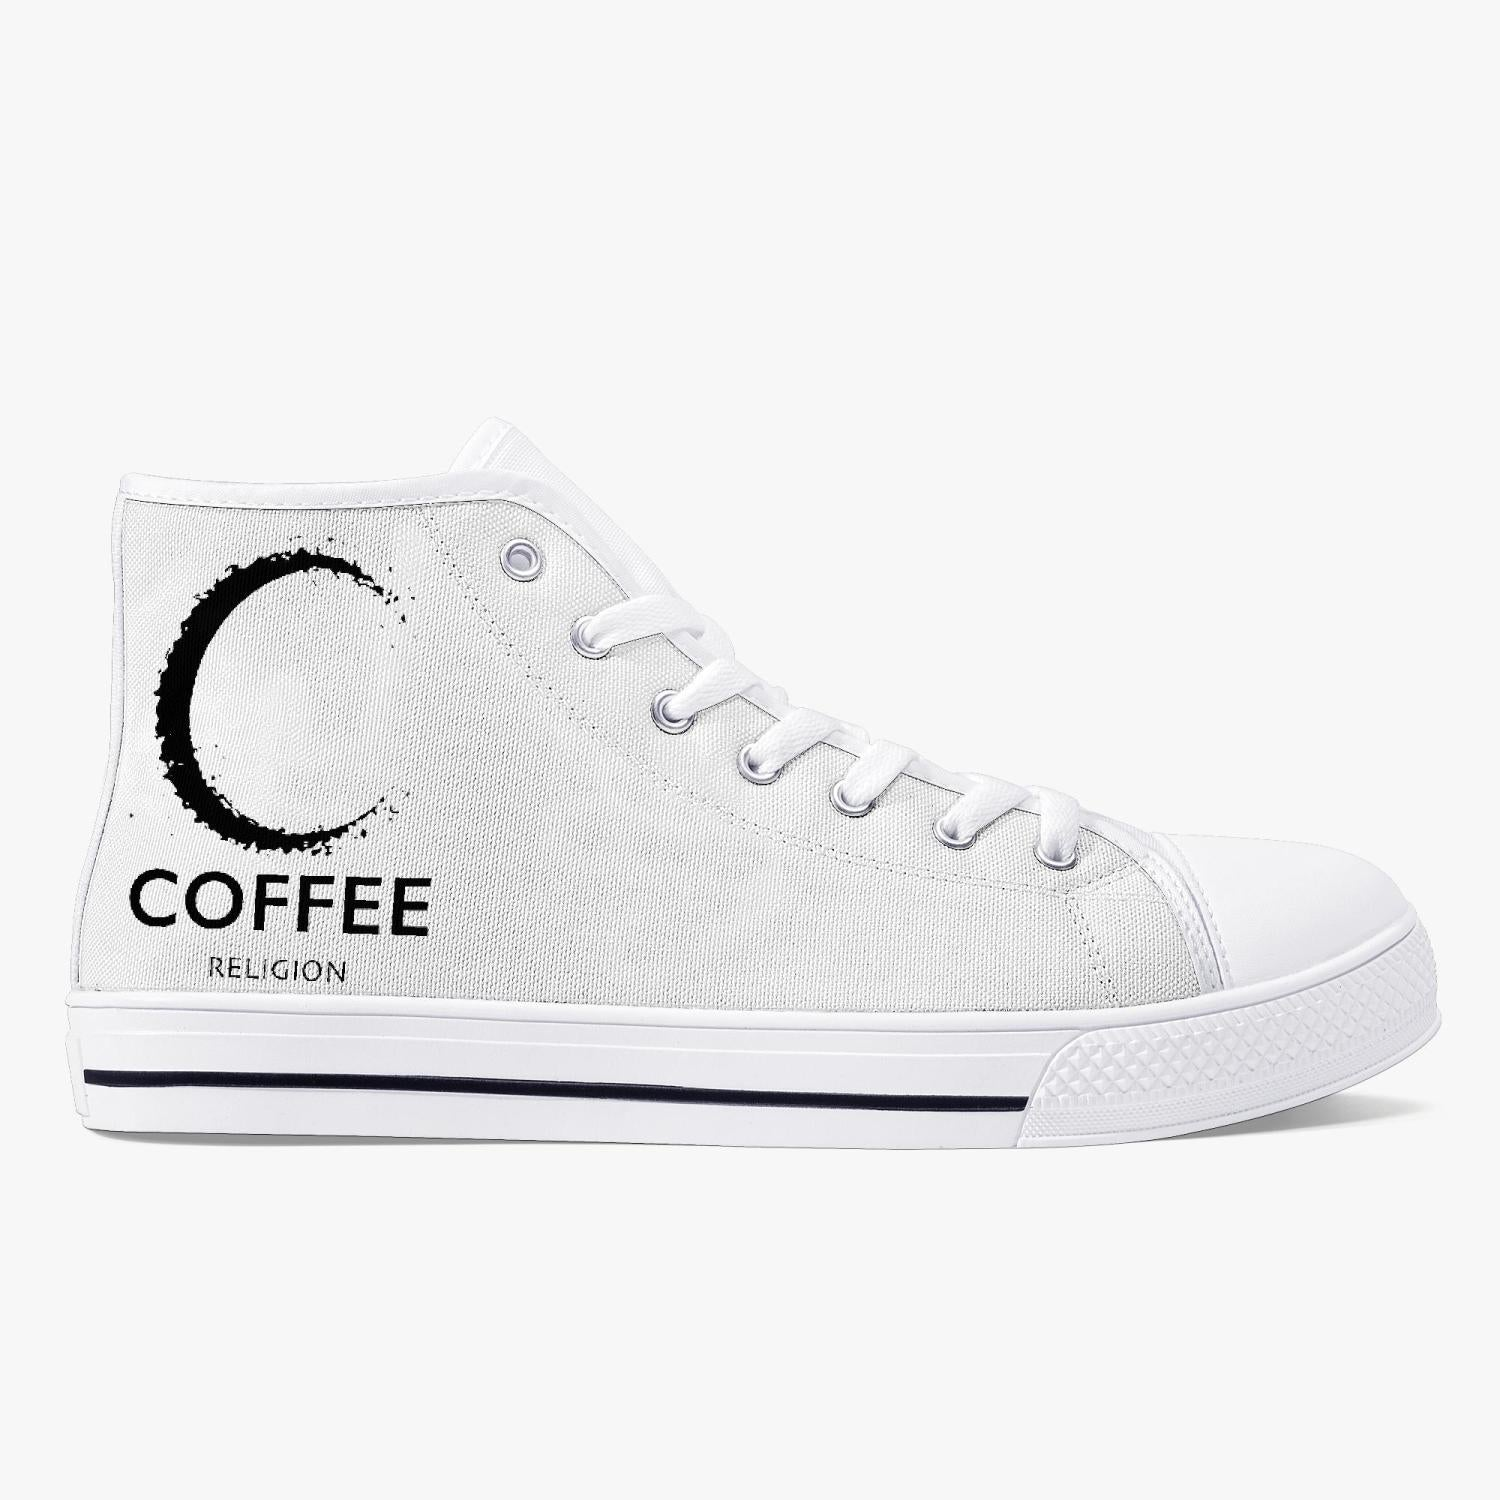 Coffee Religion Moon Walk Classic High-Top Sneakers Canvas Shoes - White/Black